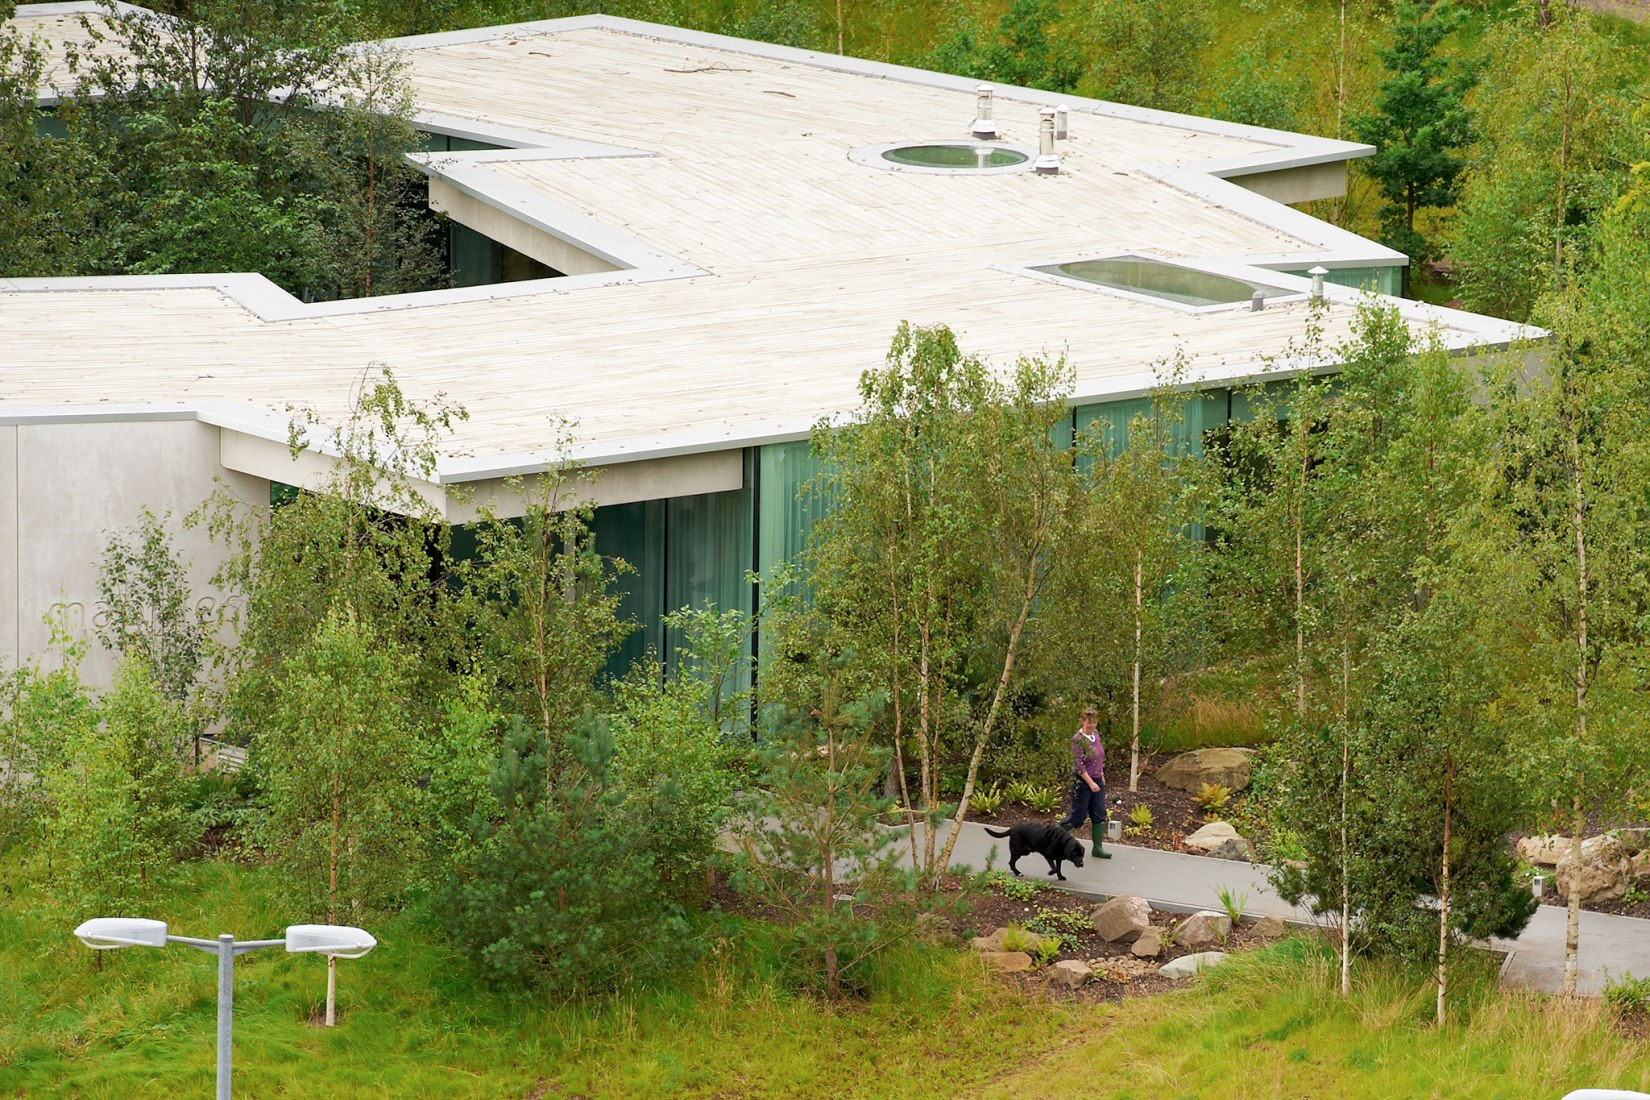 Maggie's Centre, Gartnavel Hospital, by OMA. Photograph by Philippe Ruault